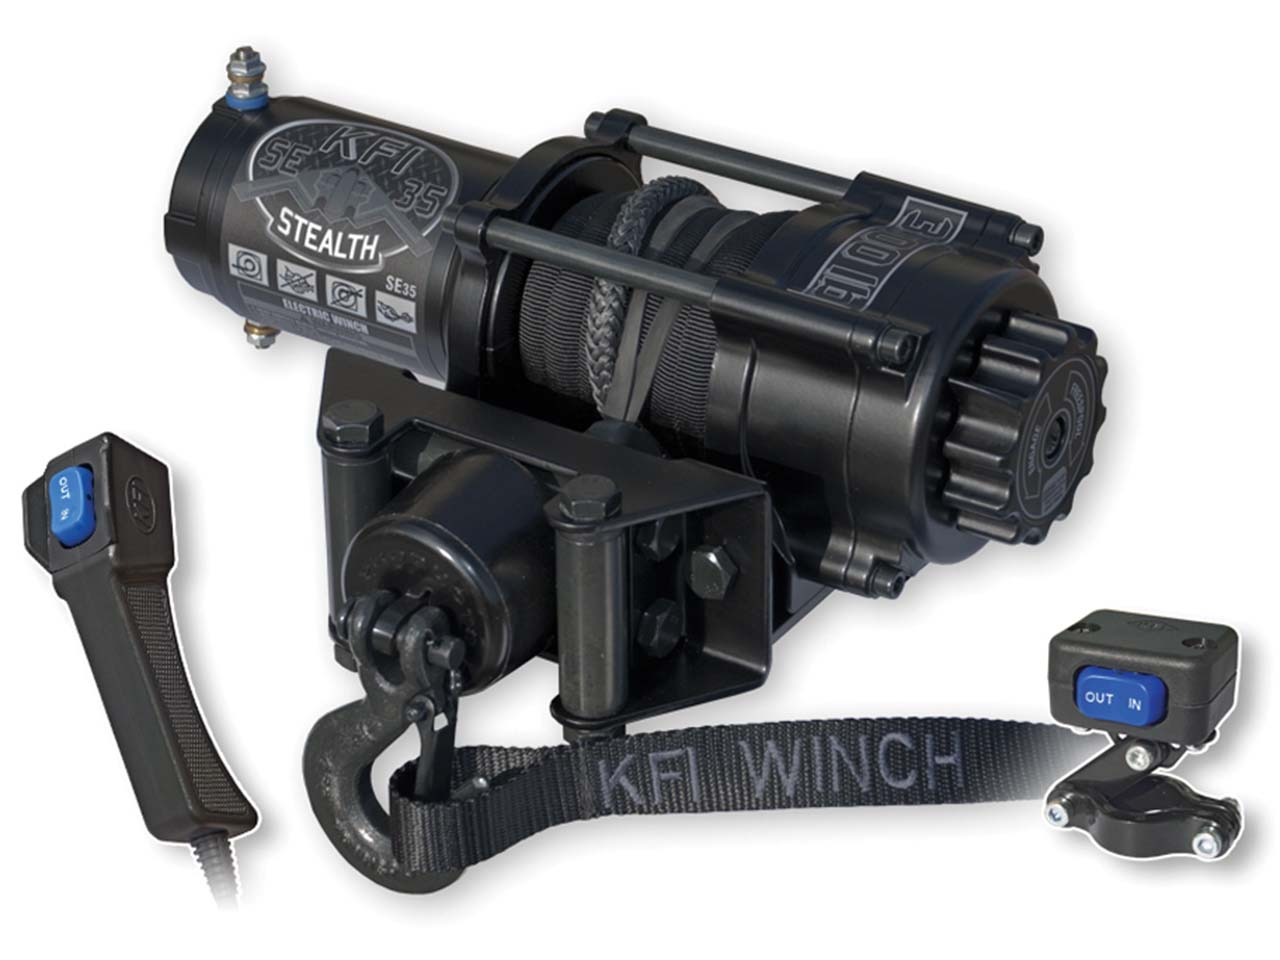 STEALTH 3500 LB SYNTHETIC WINCH